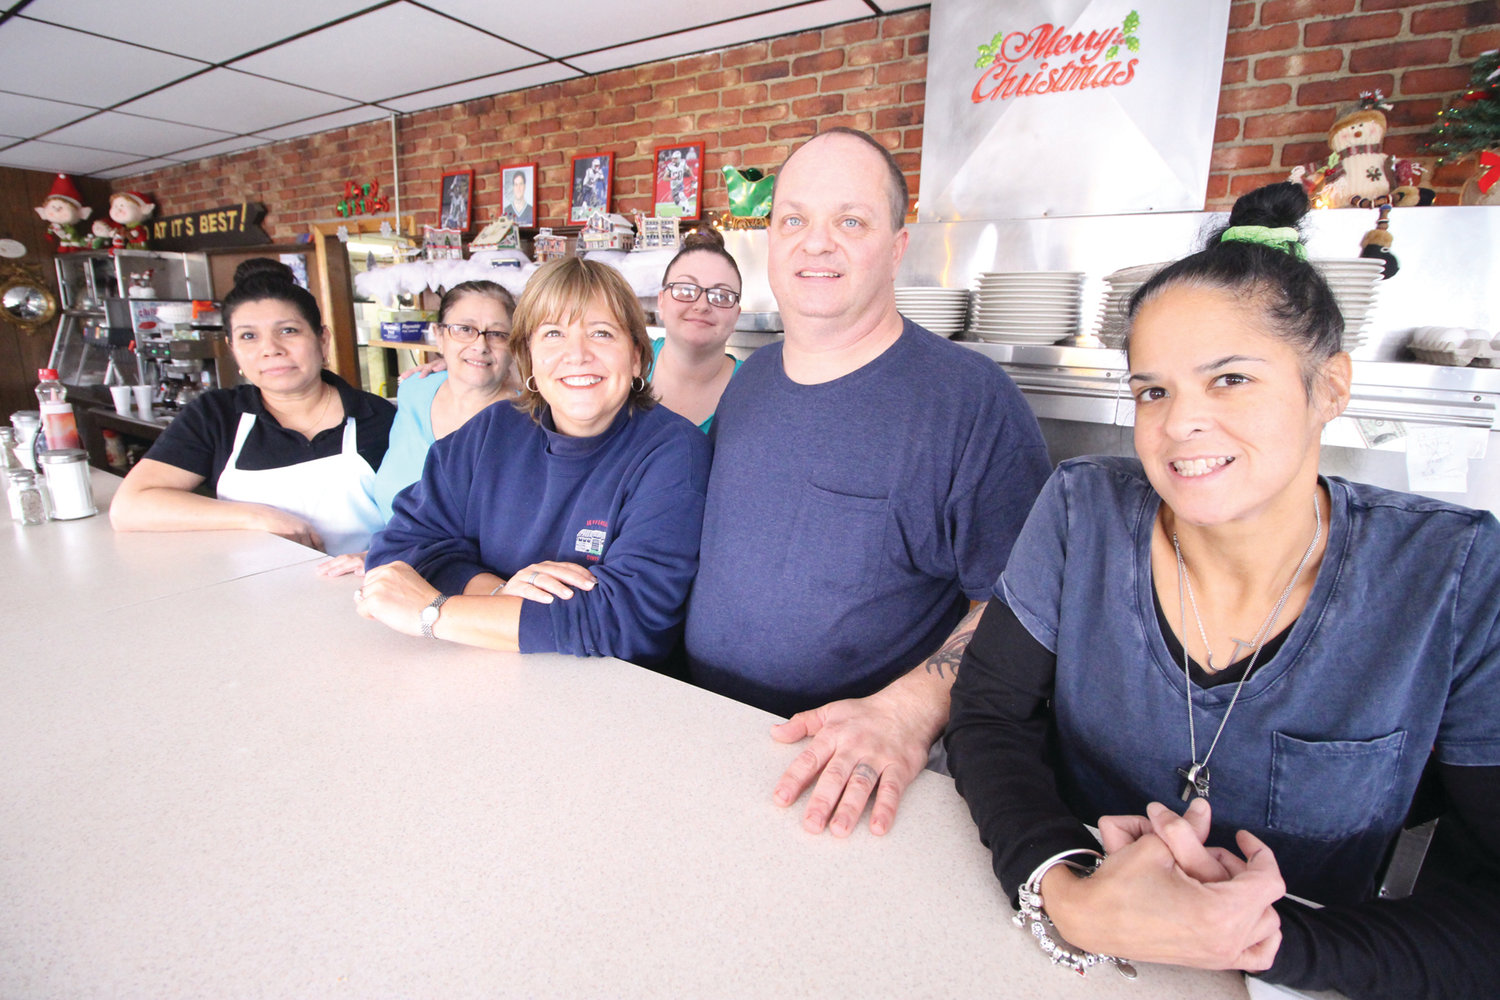 DINER TEAM: A staff of 11 keep the diner running seven days a week. Here, Kellie is joined by some of the team, including (from left) Sandra, Mary Anne, Jenny, Chuckie and Jay.